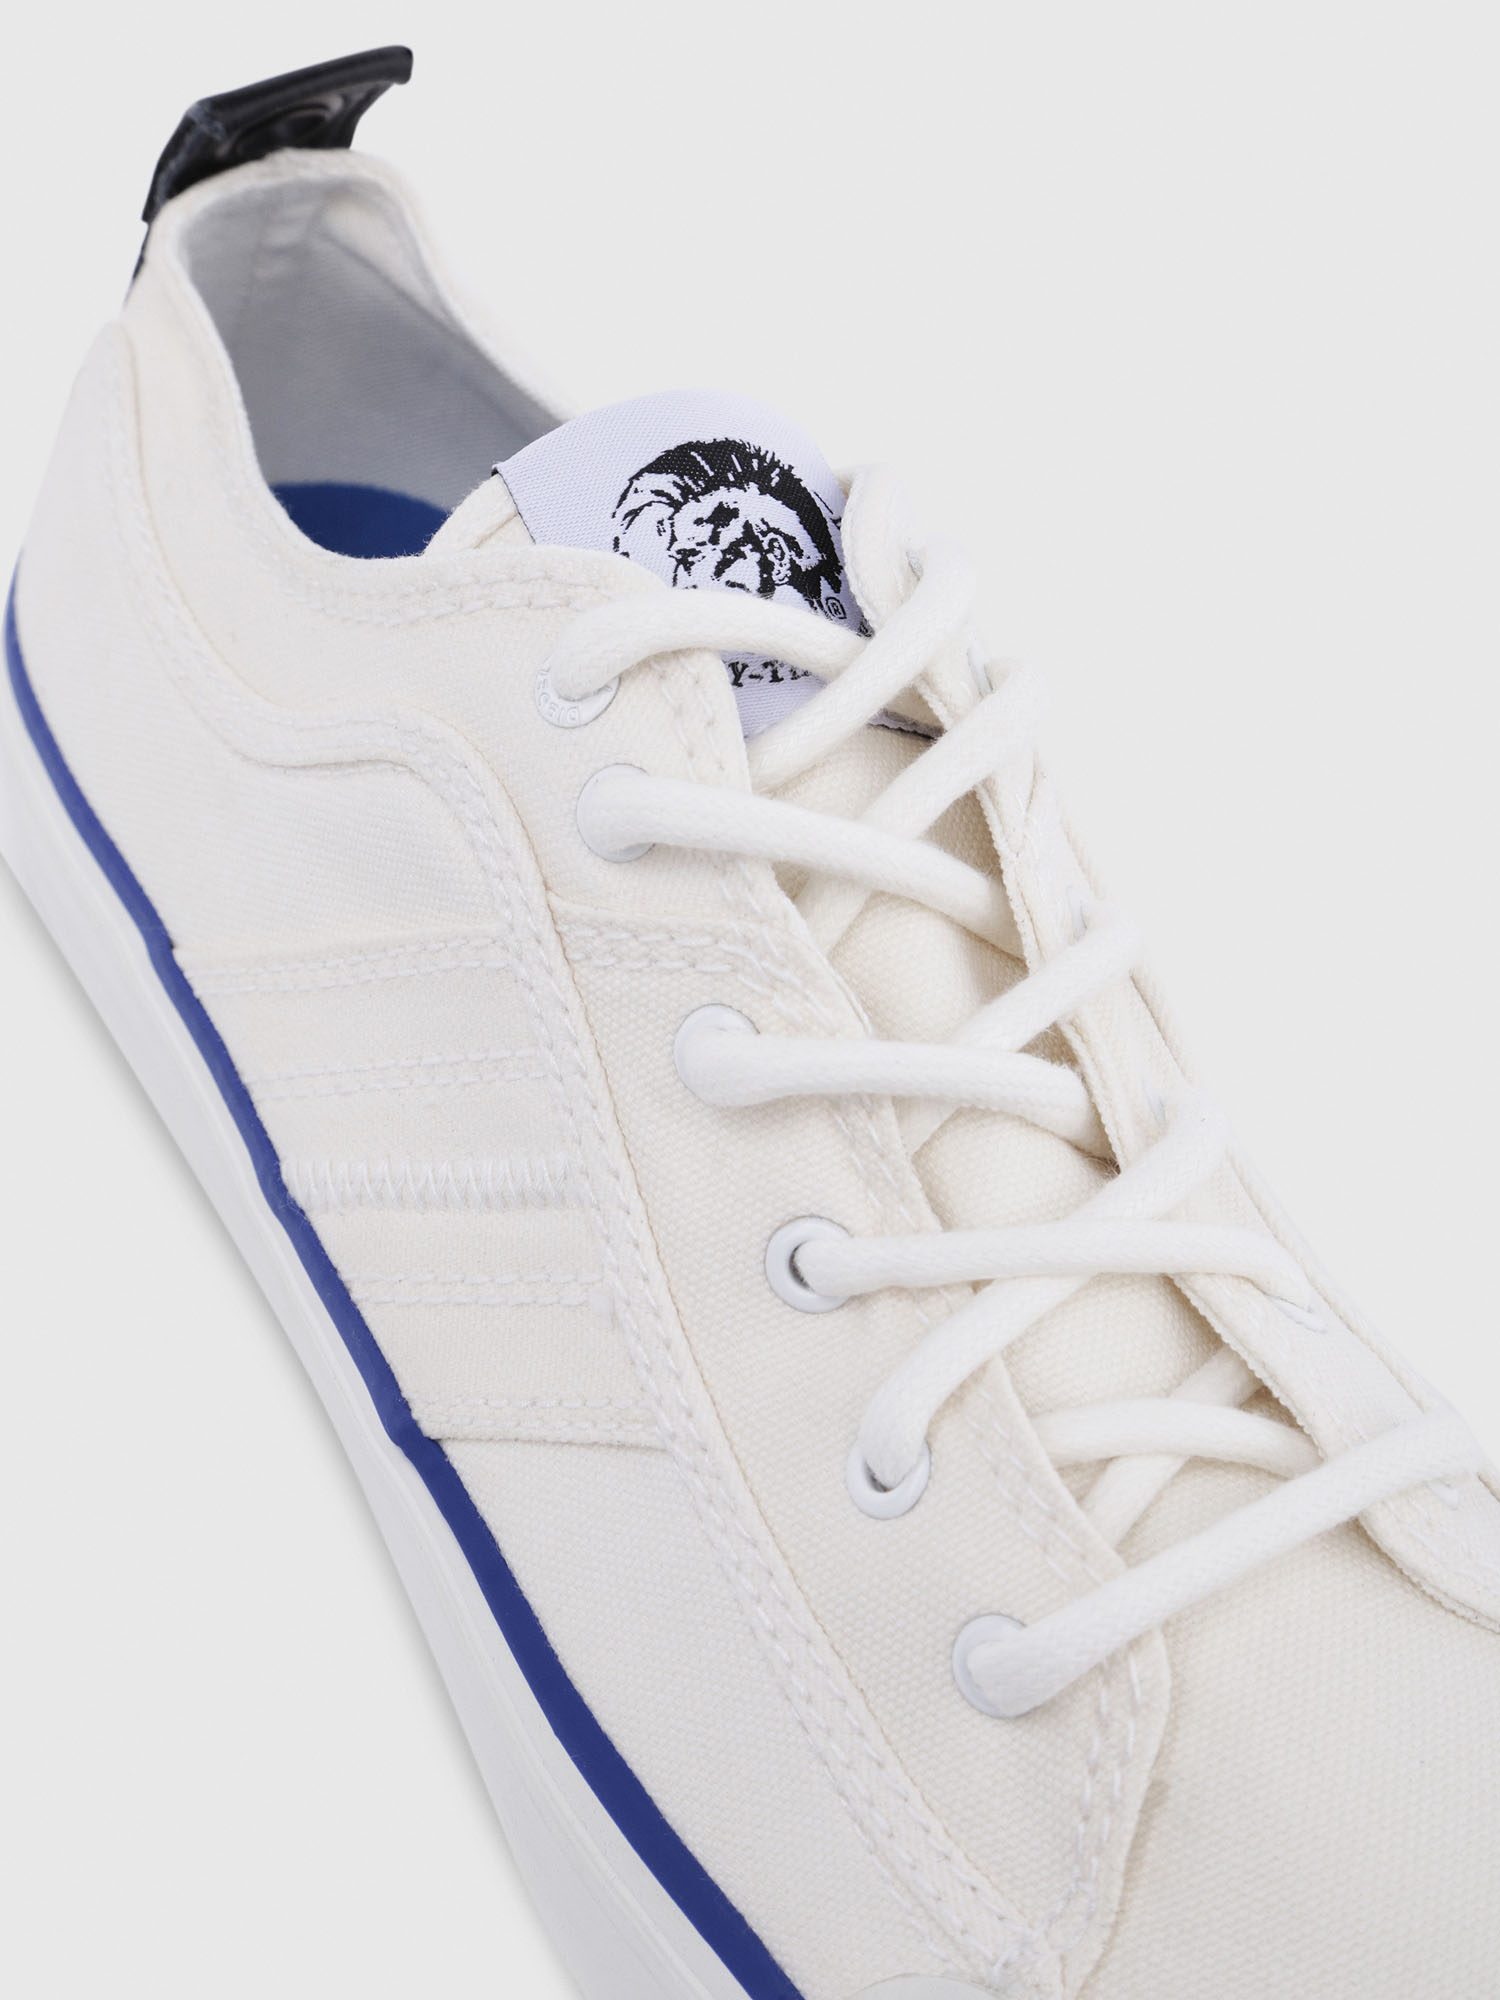 Diesel - S-ASTICO LC LOGO,  - Sneakers - Image 4